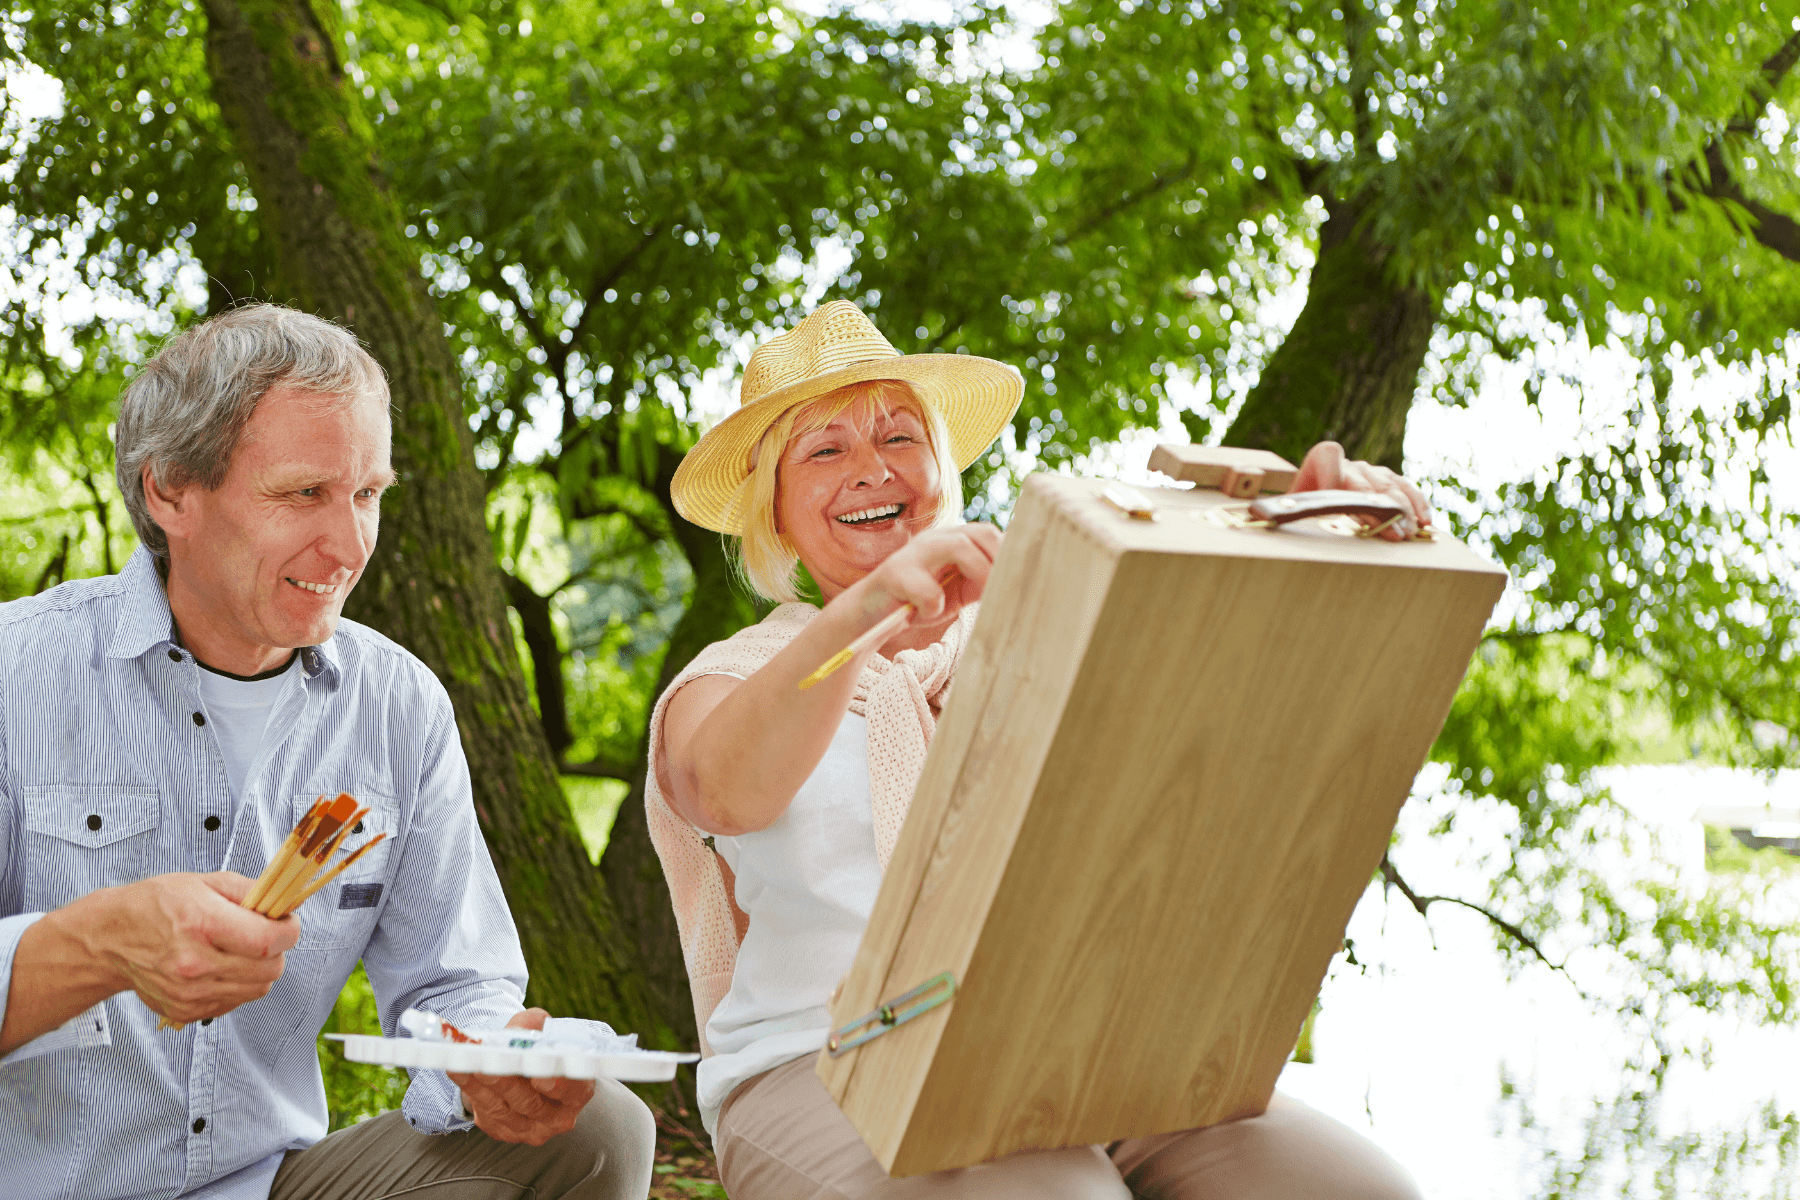 6 Creative Projects Seniors Can Do in a Day